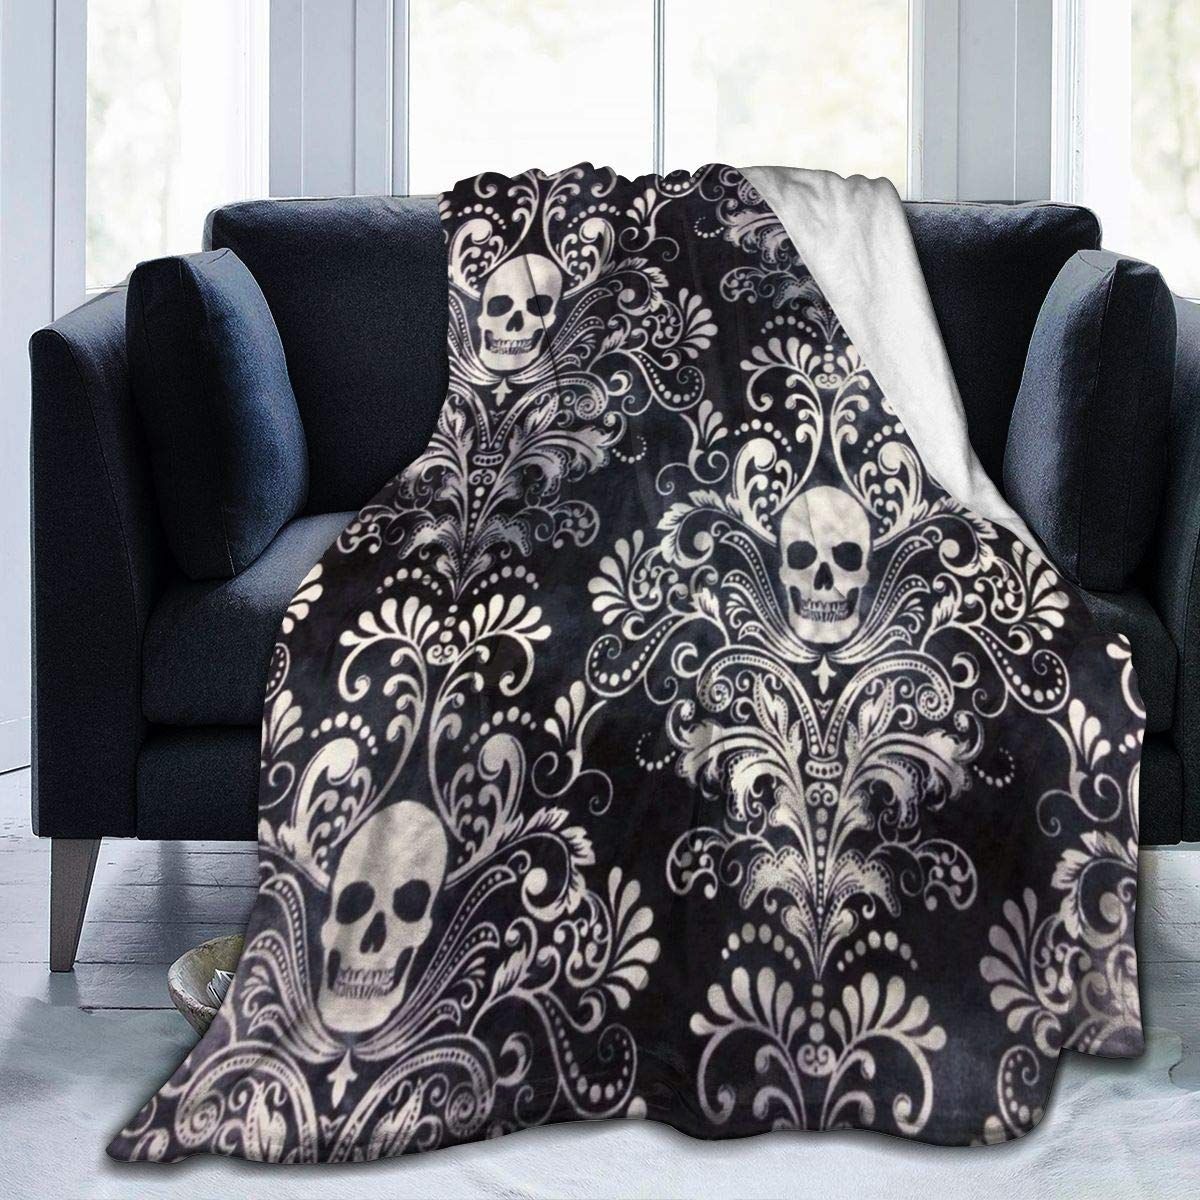 Fleece Plush Throw Blanket Comforter Gothic Skull Damask Scary Halloween Faux Fur Soft Cozy Warm Fluffy Lightweight Microfiber Fuzzy Twin Blanket for Bed Couch Sofa Chair Fall Nap Travel Camp Picnic C